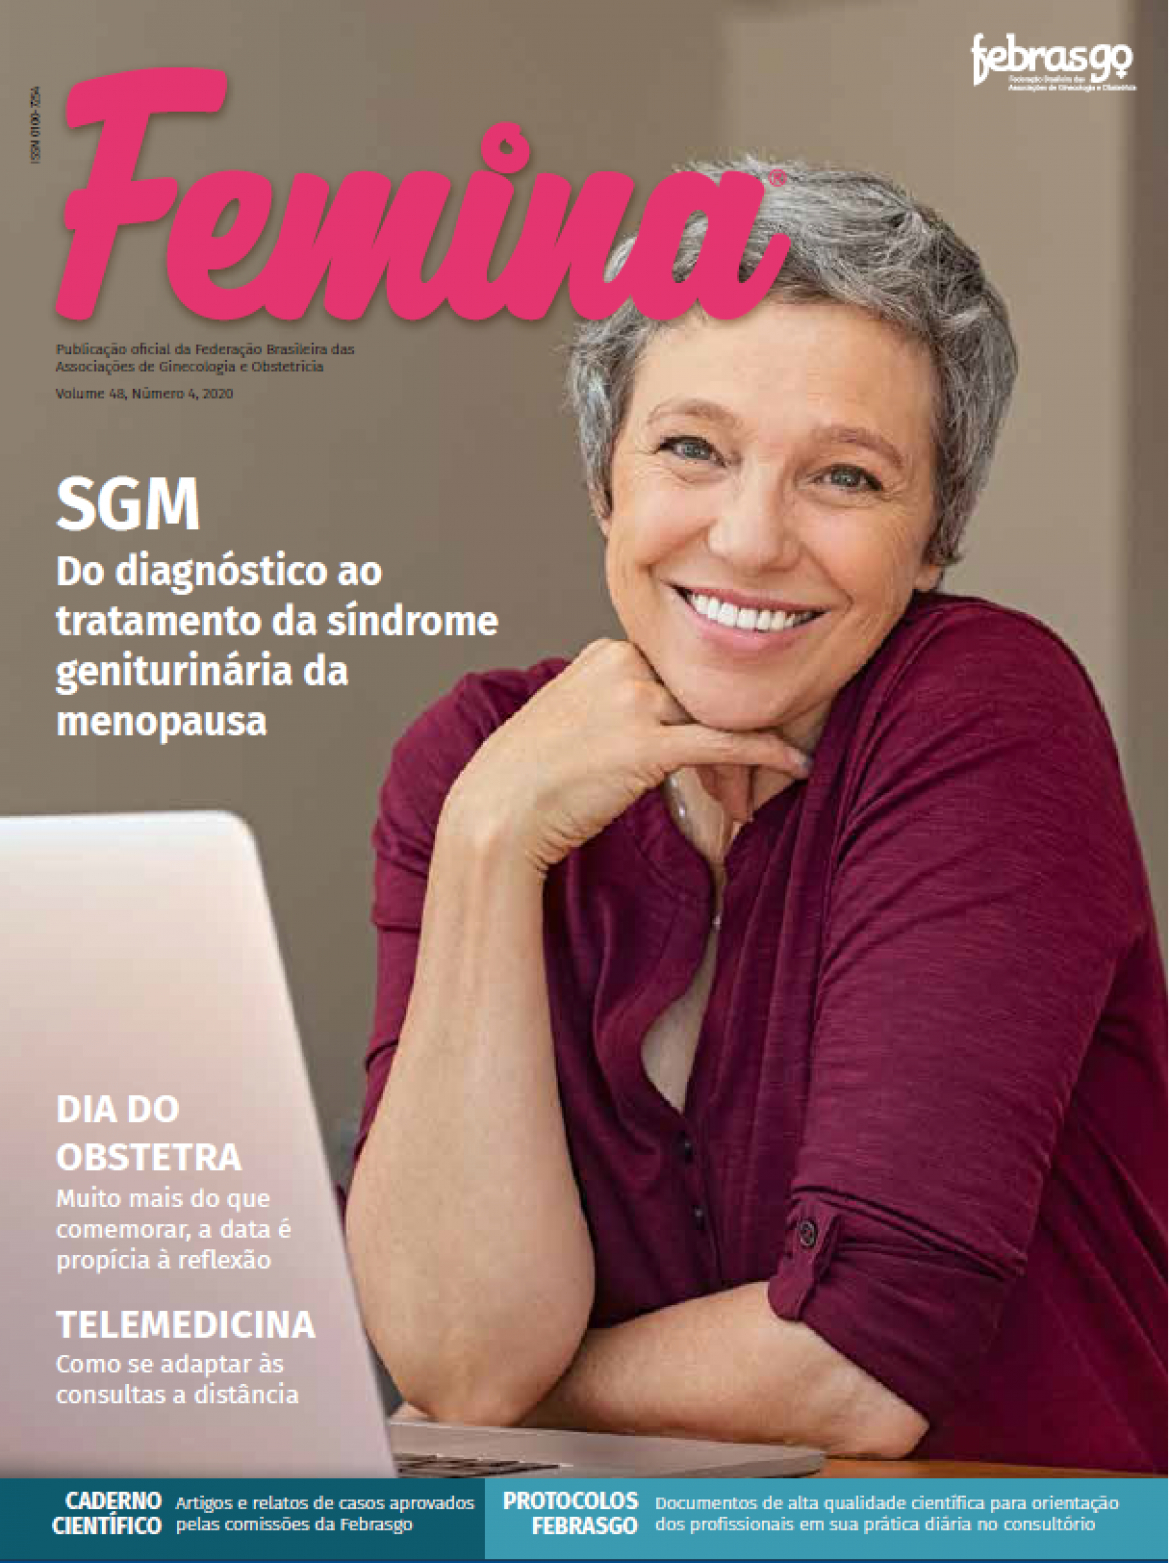 REVISTA FEMINA - 2020 | VOL 48 | Nº 04